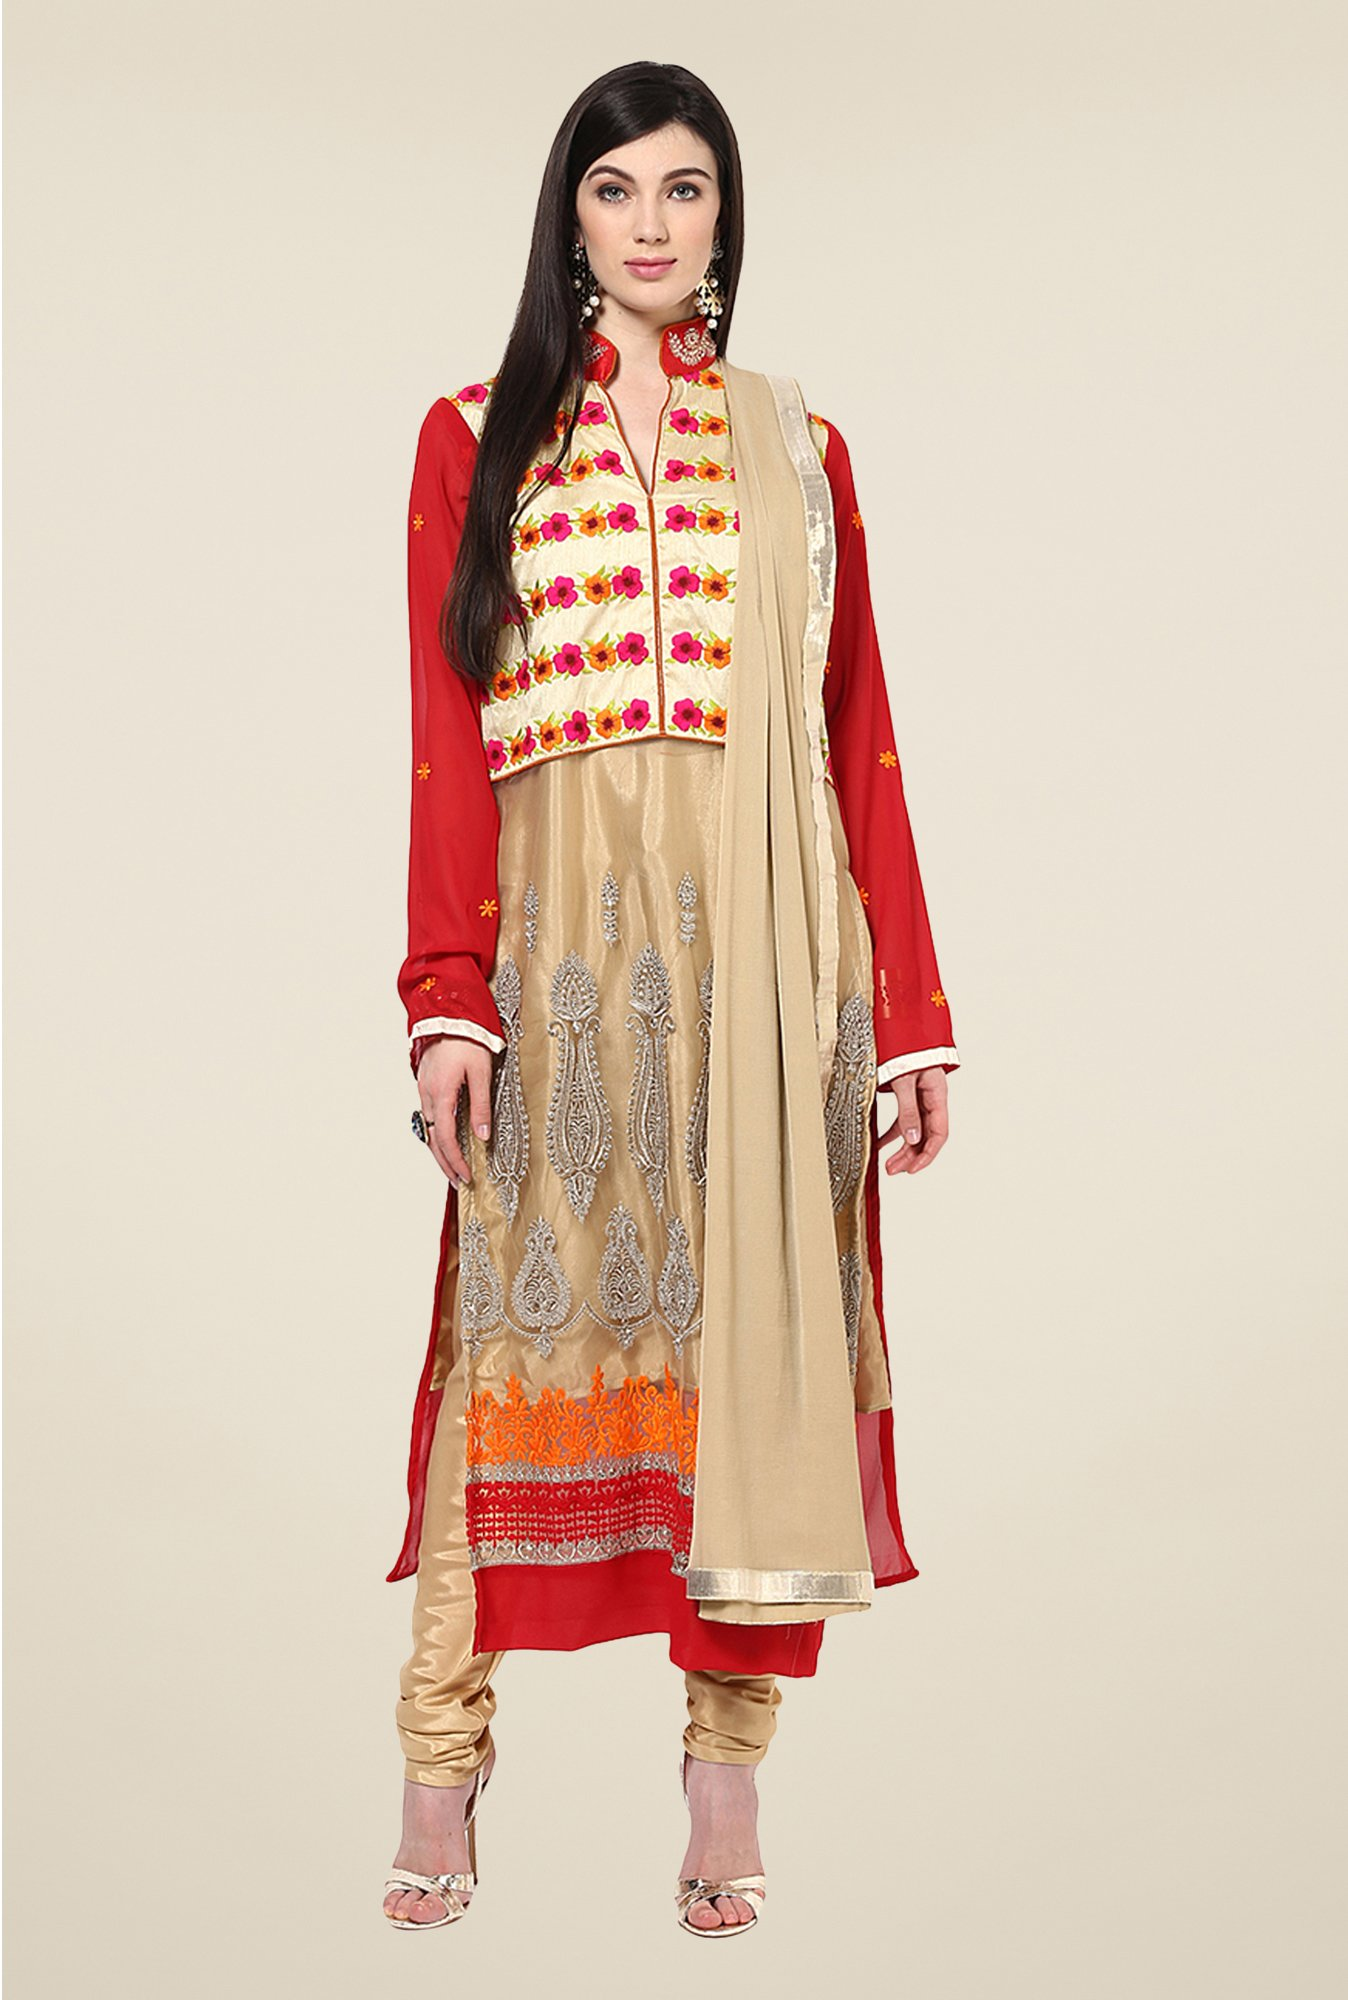 Yepme Helga Beige & Red Unstitched Suit Set